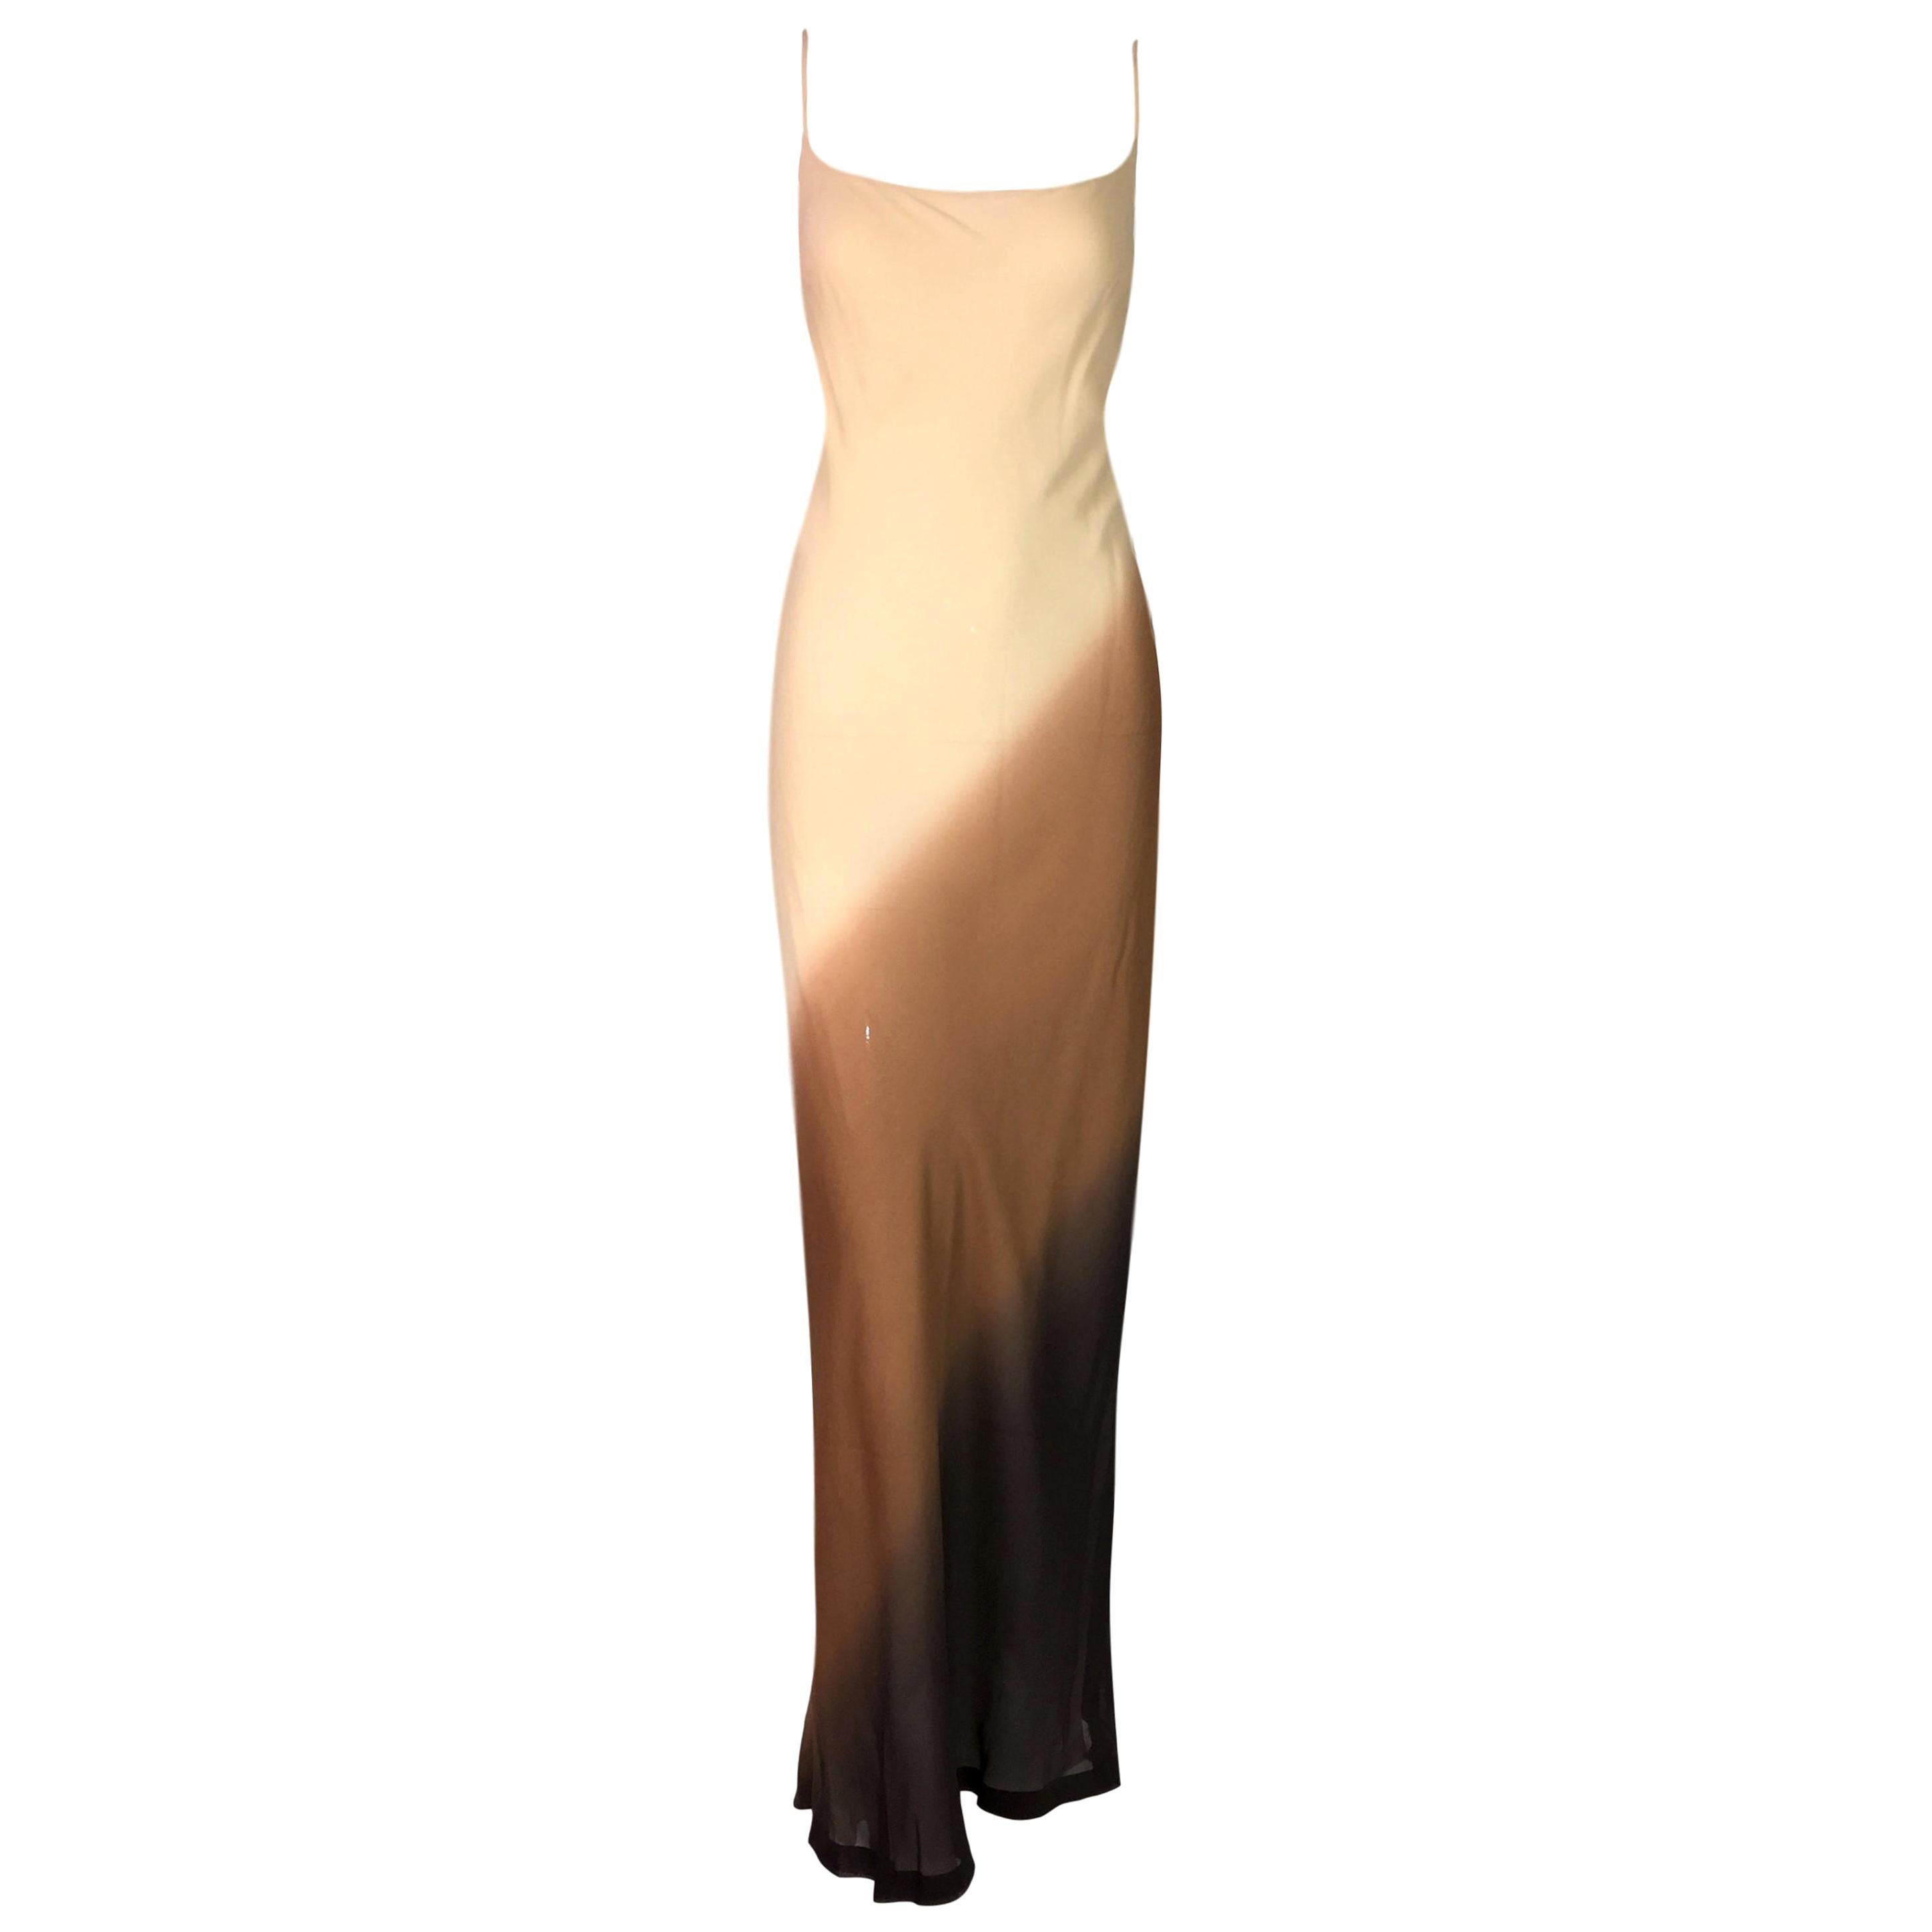 NWT 1997 Gucci by Tom Ford Sheer Nude & Brown Ombre Silk Gown Dress